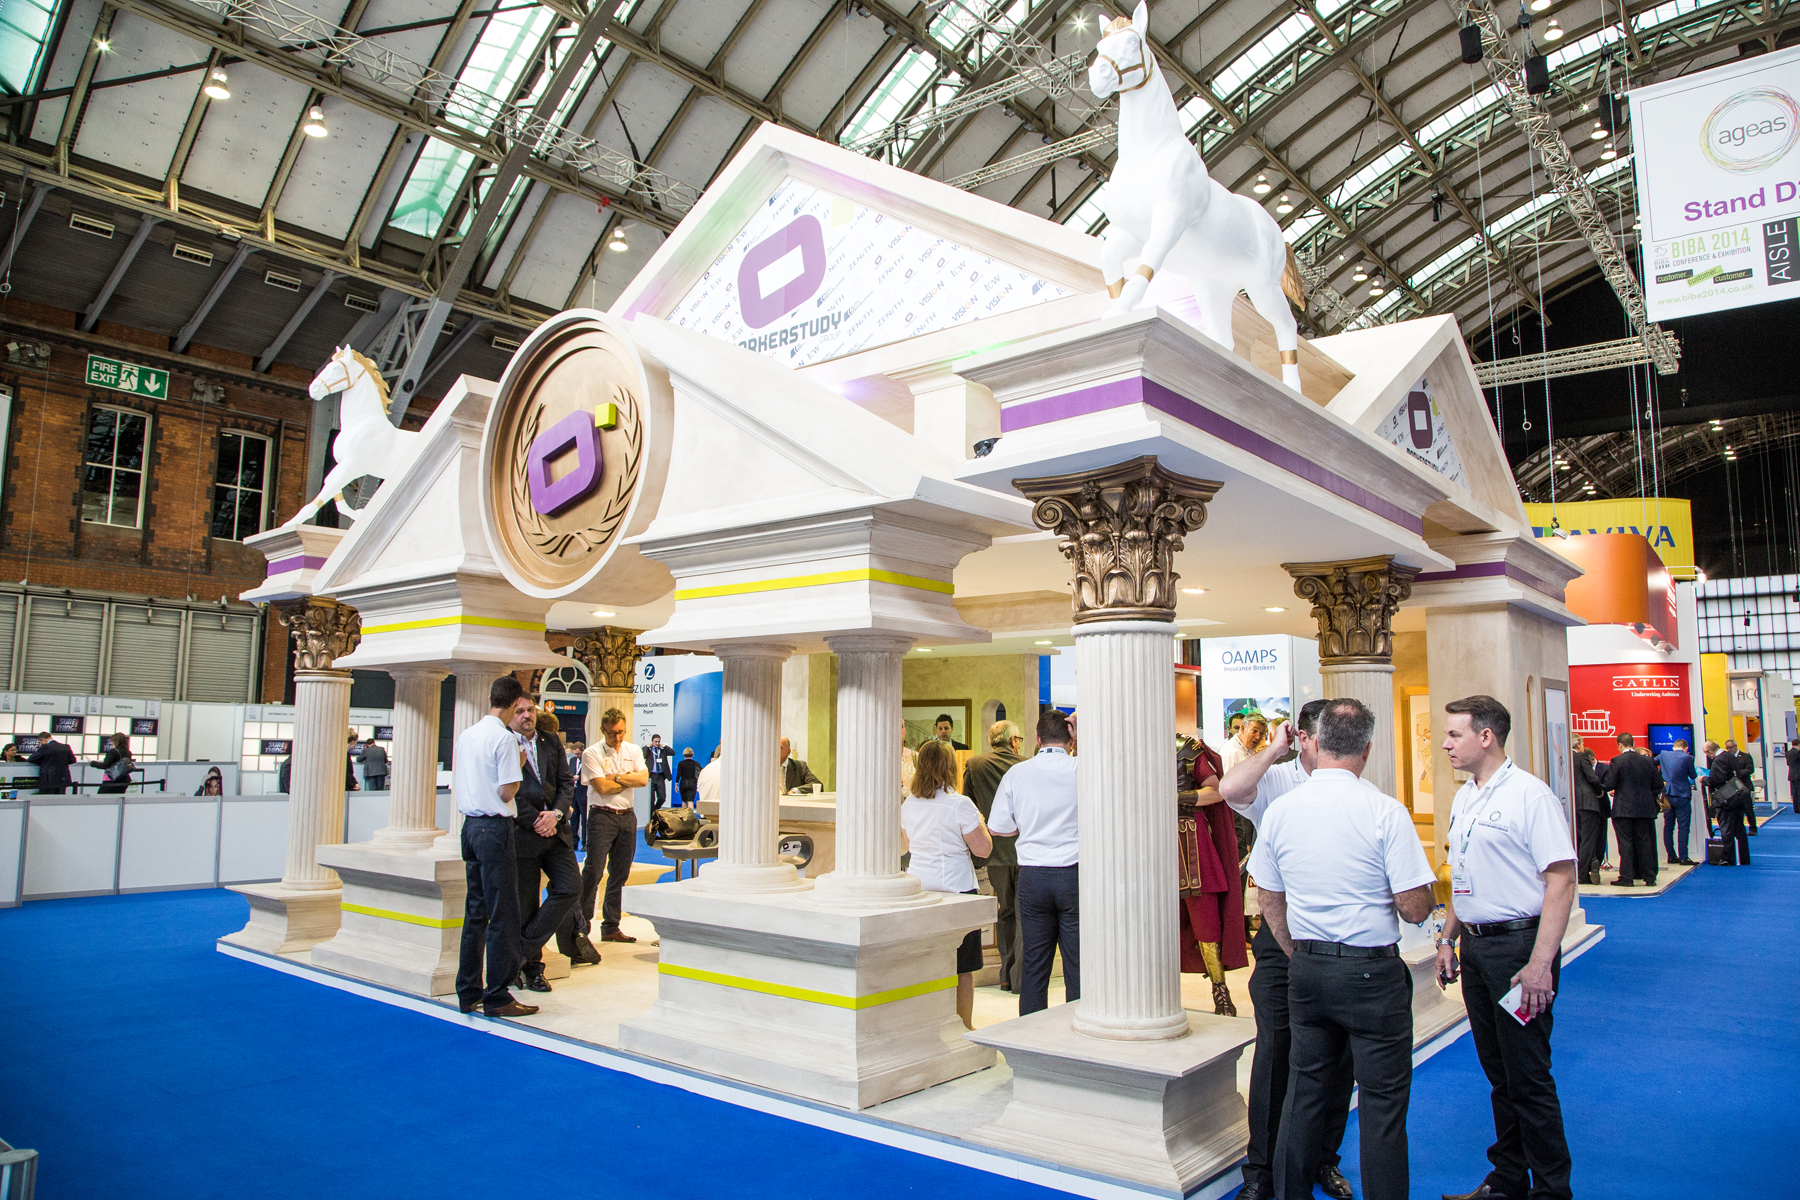 Exhibition-Stand-Rise-of-the-empire-entrance-right